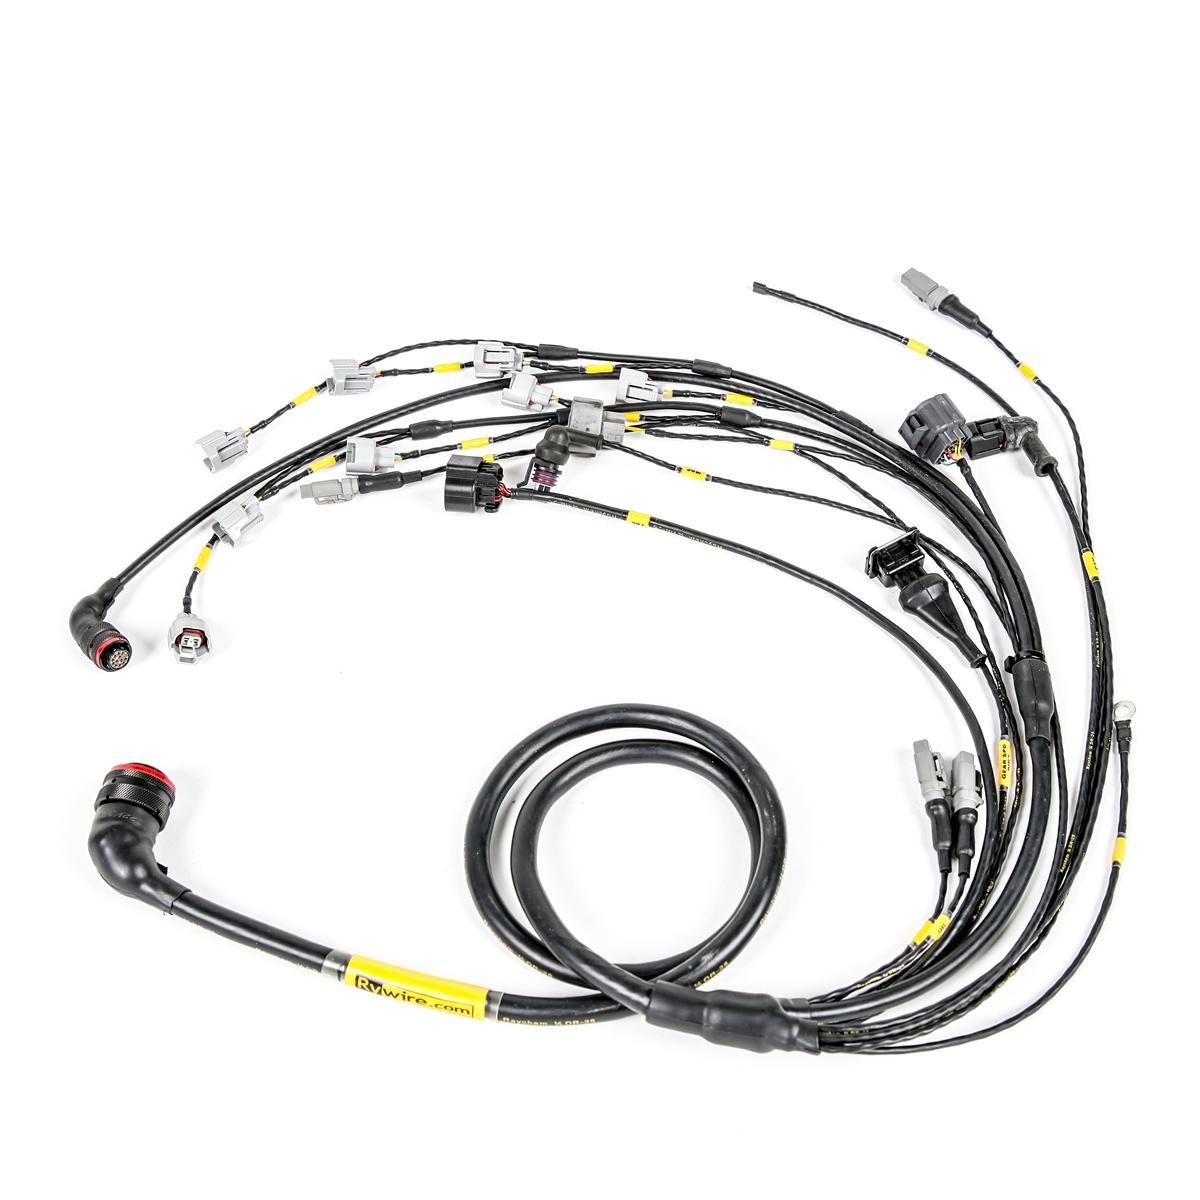 mil spec custom harness 5?1426680579 rywire com mil spec custom engine harness custom engine wiring harness at webbmarketing.co